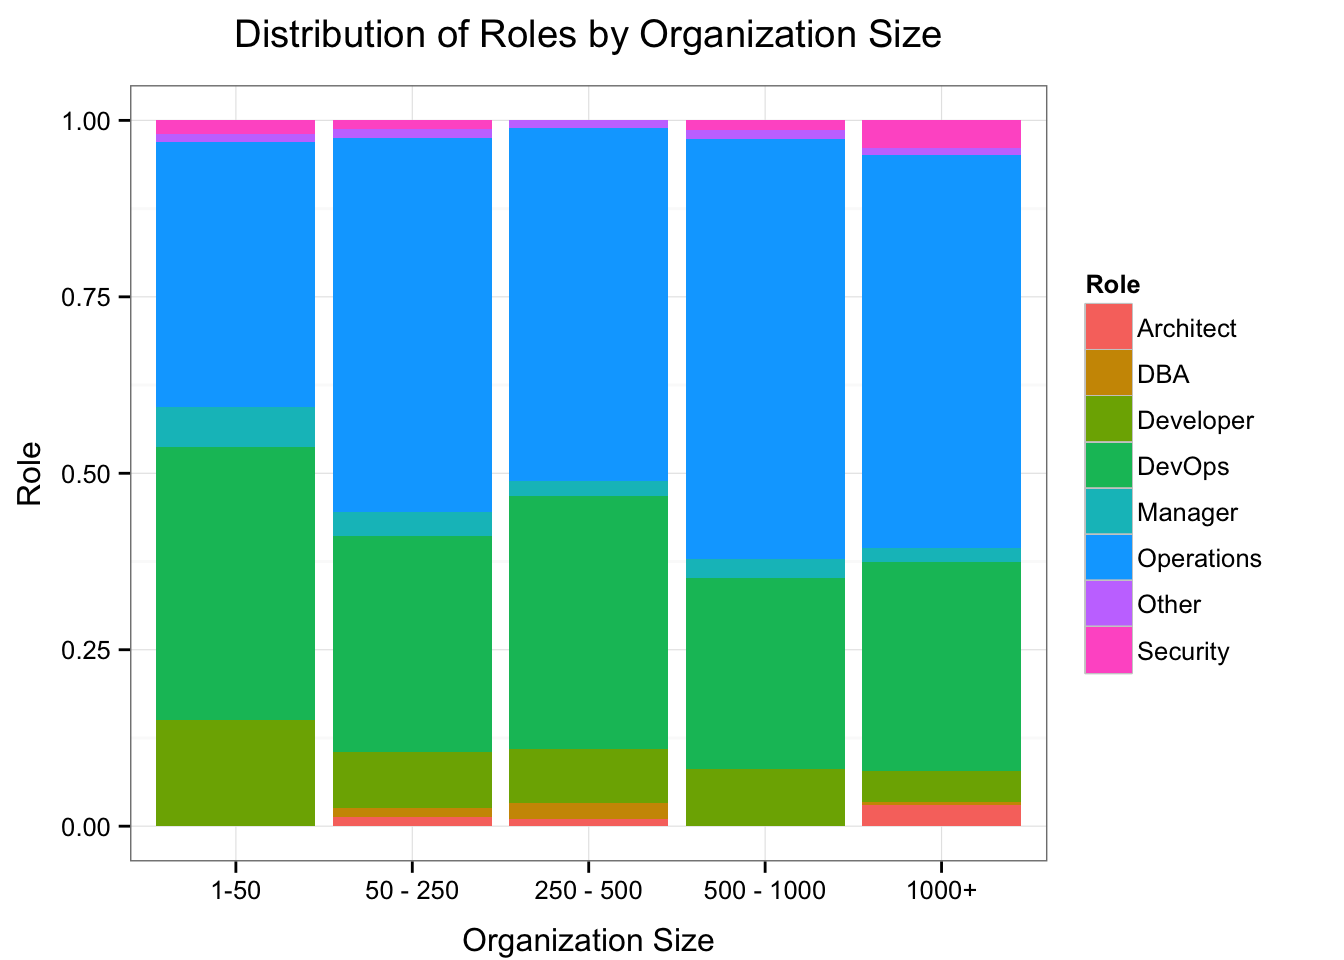 Roles by Organization Size